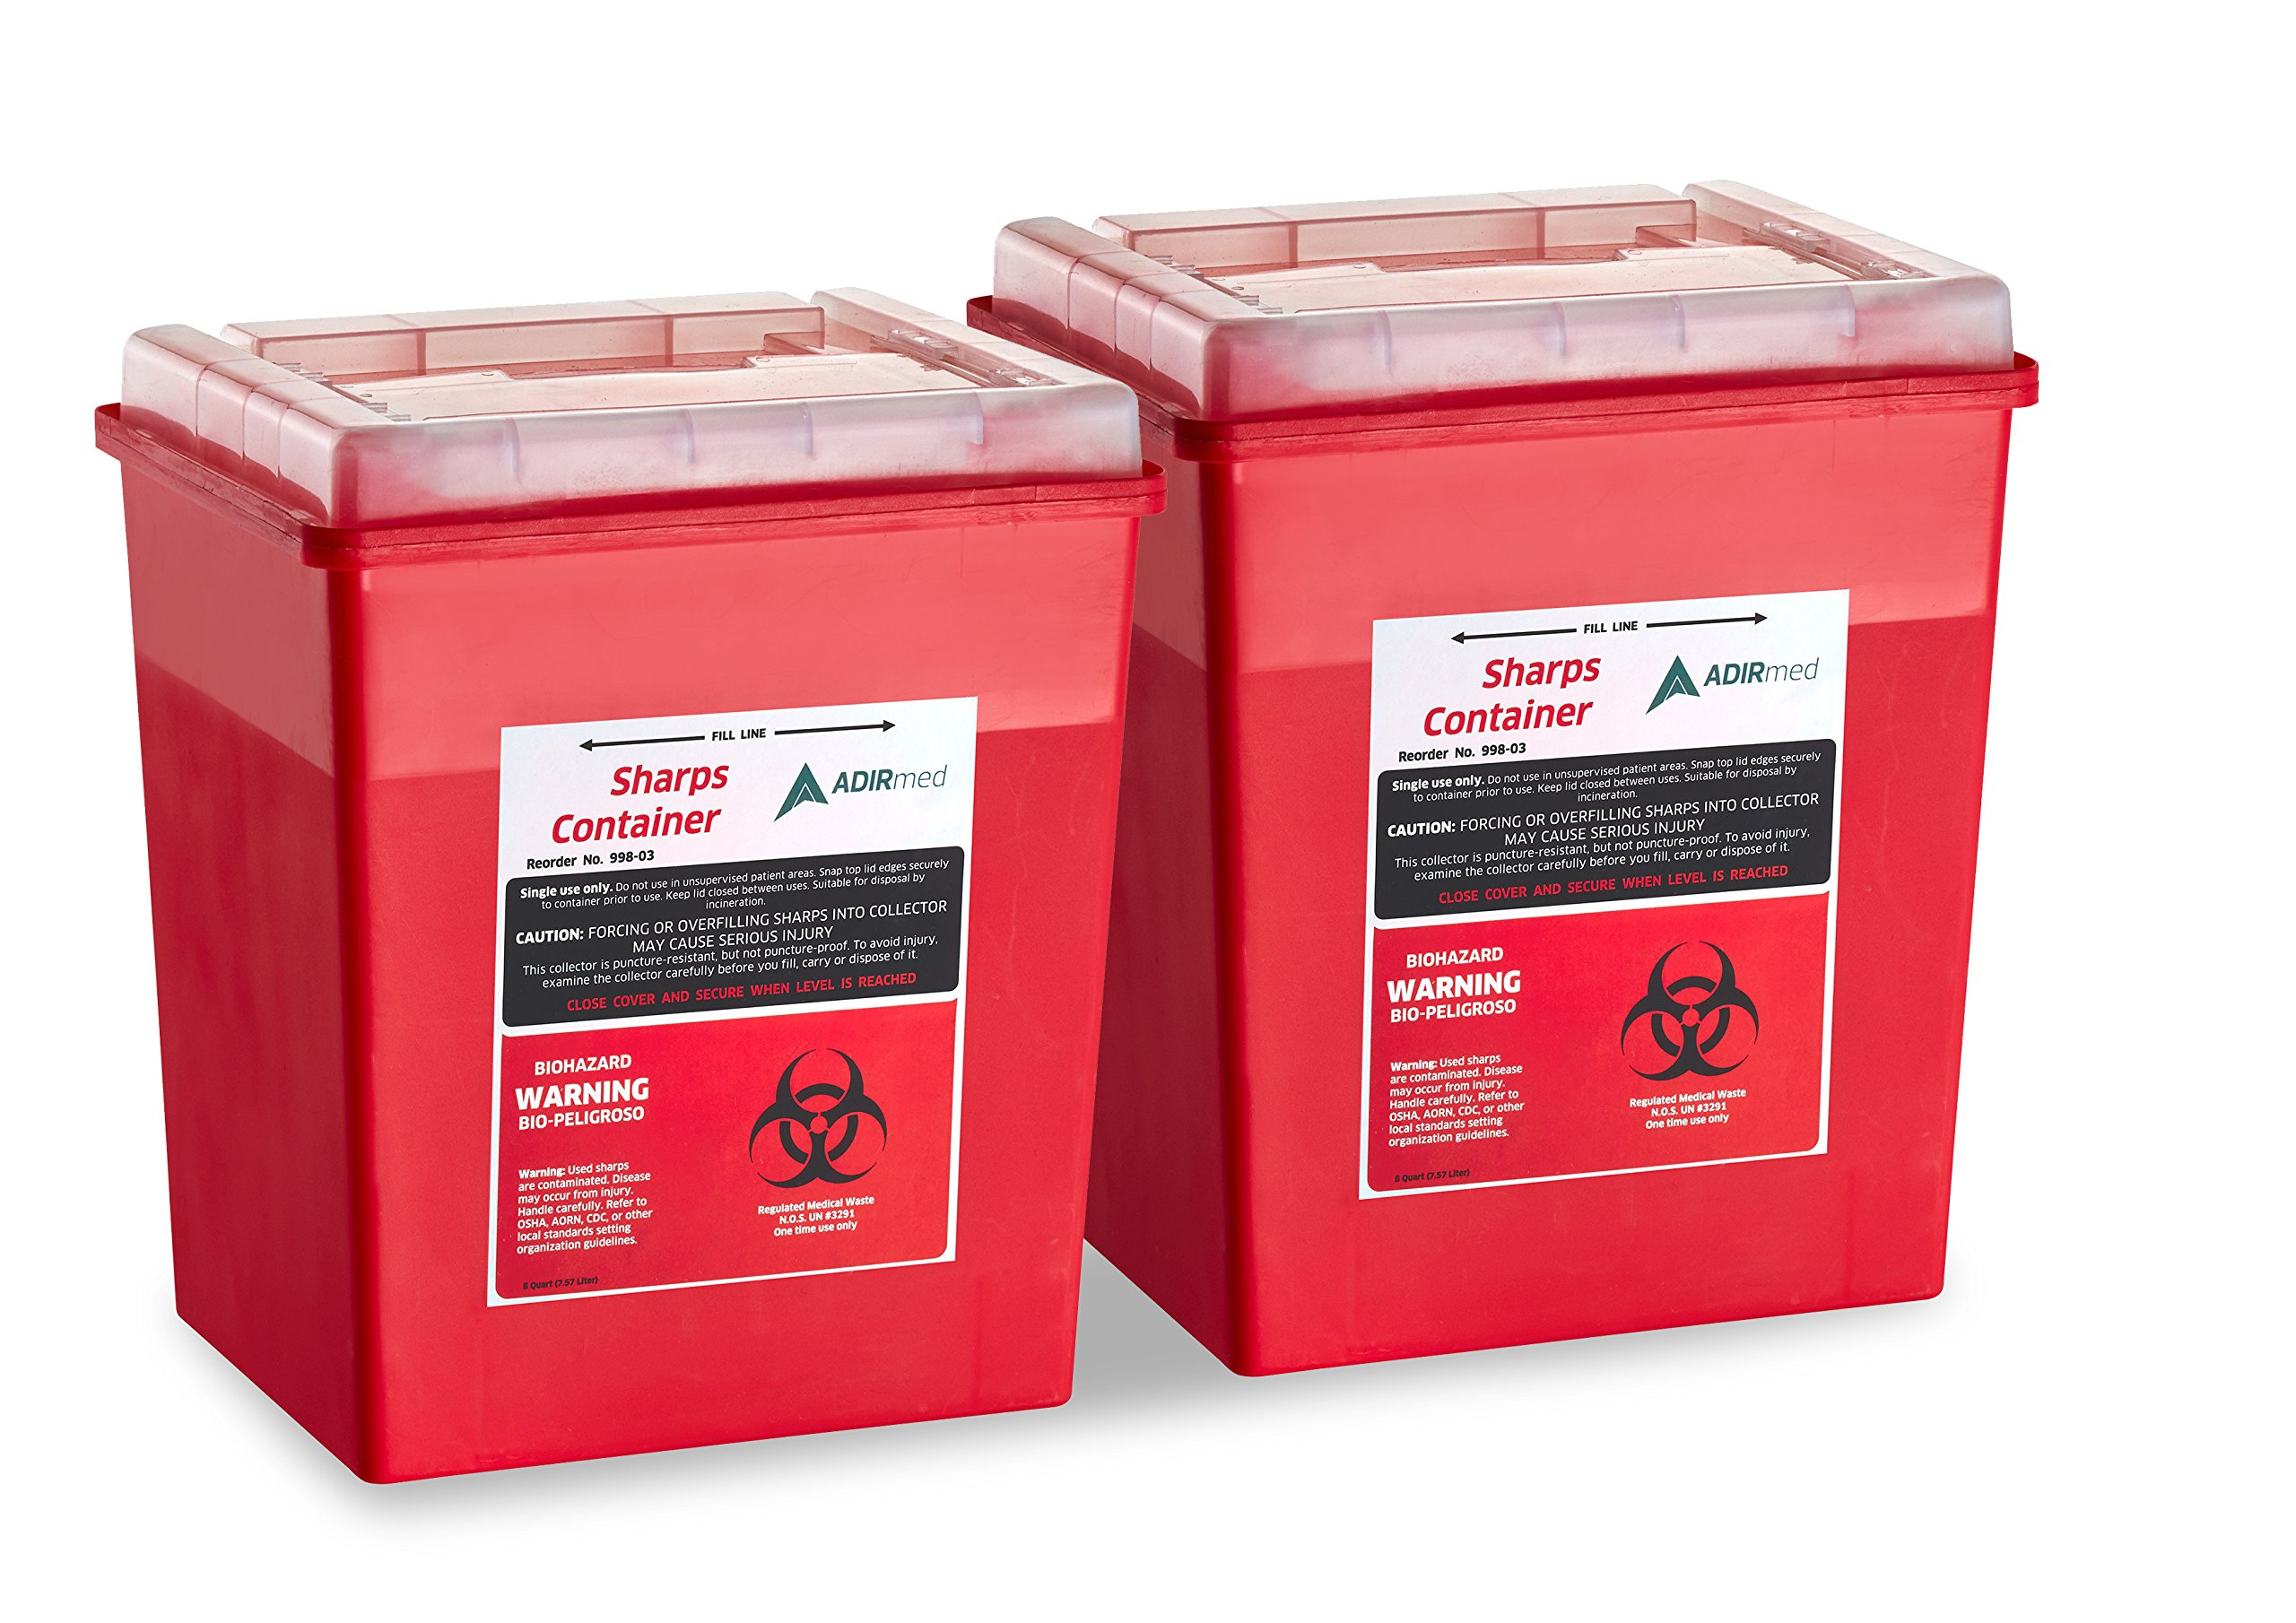 AdirMed Sharps & Needle Biohazard Disposal Container - 8 Quart - Flip-Open Lid - 2 Pack